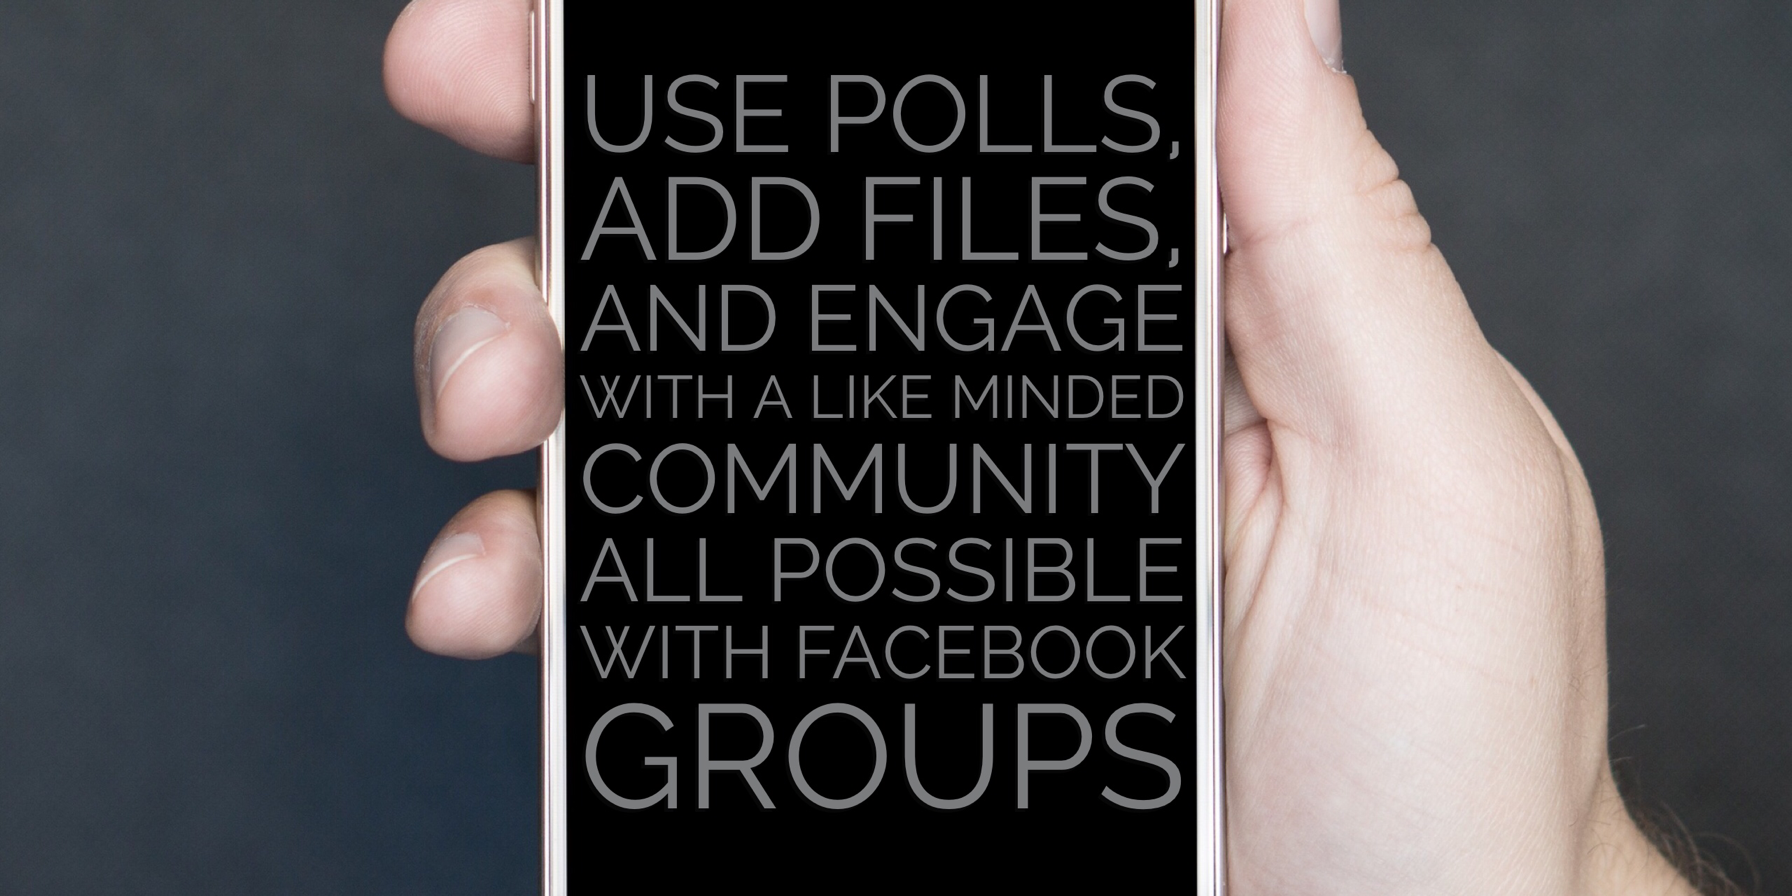 Facebook Groups community engagement